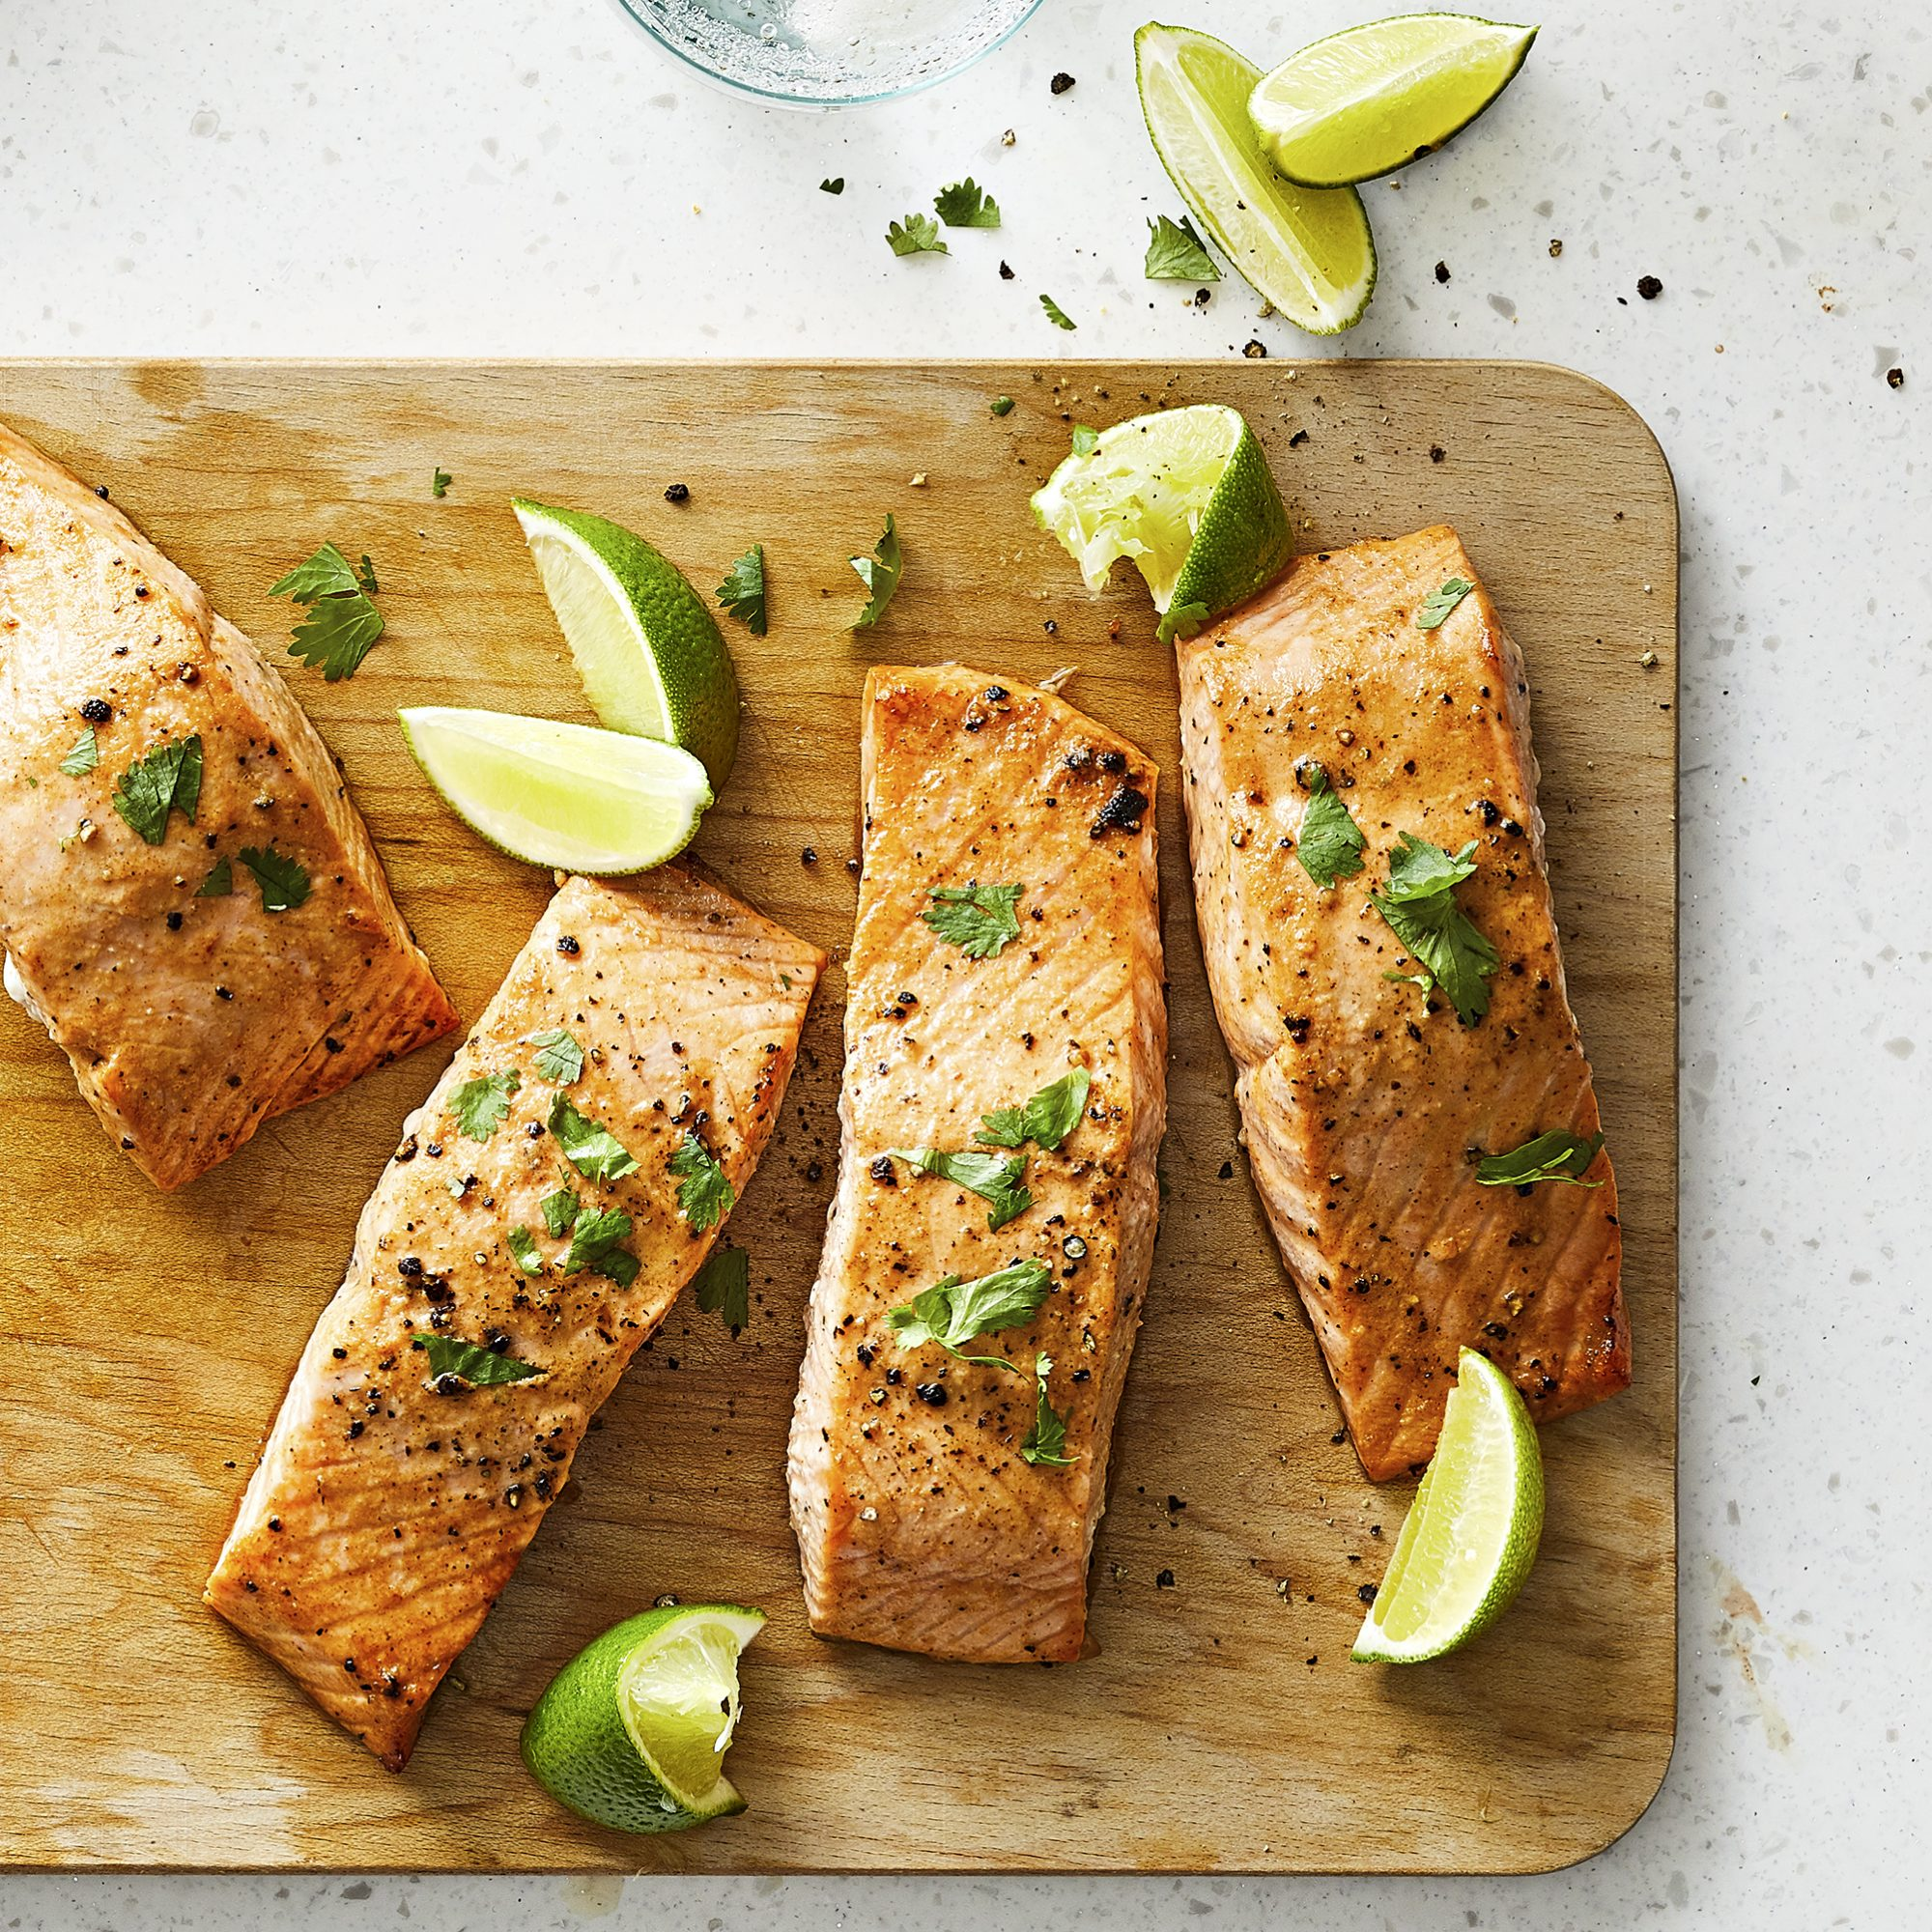 Four Lime-Marinated Baked Salmon Filets sitting on a wooden cutting board with fresh lime wedges.